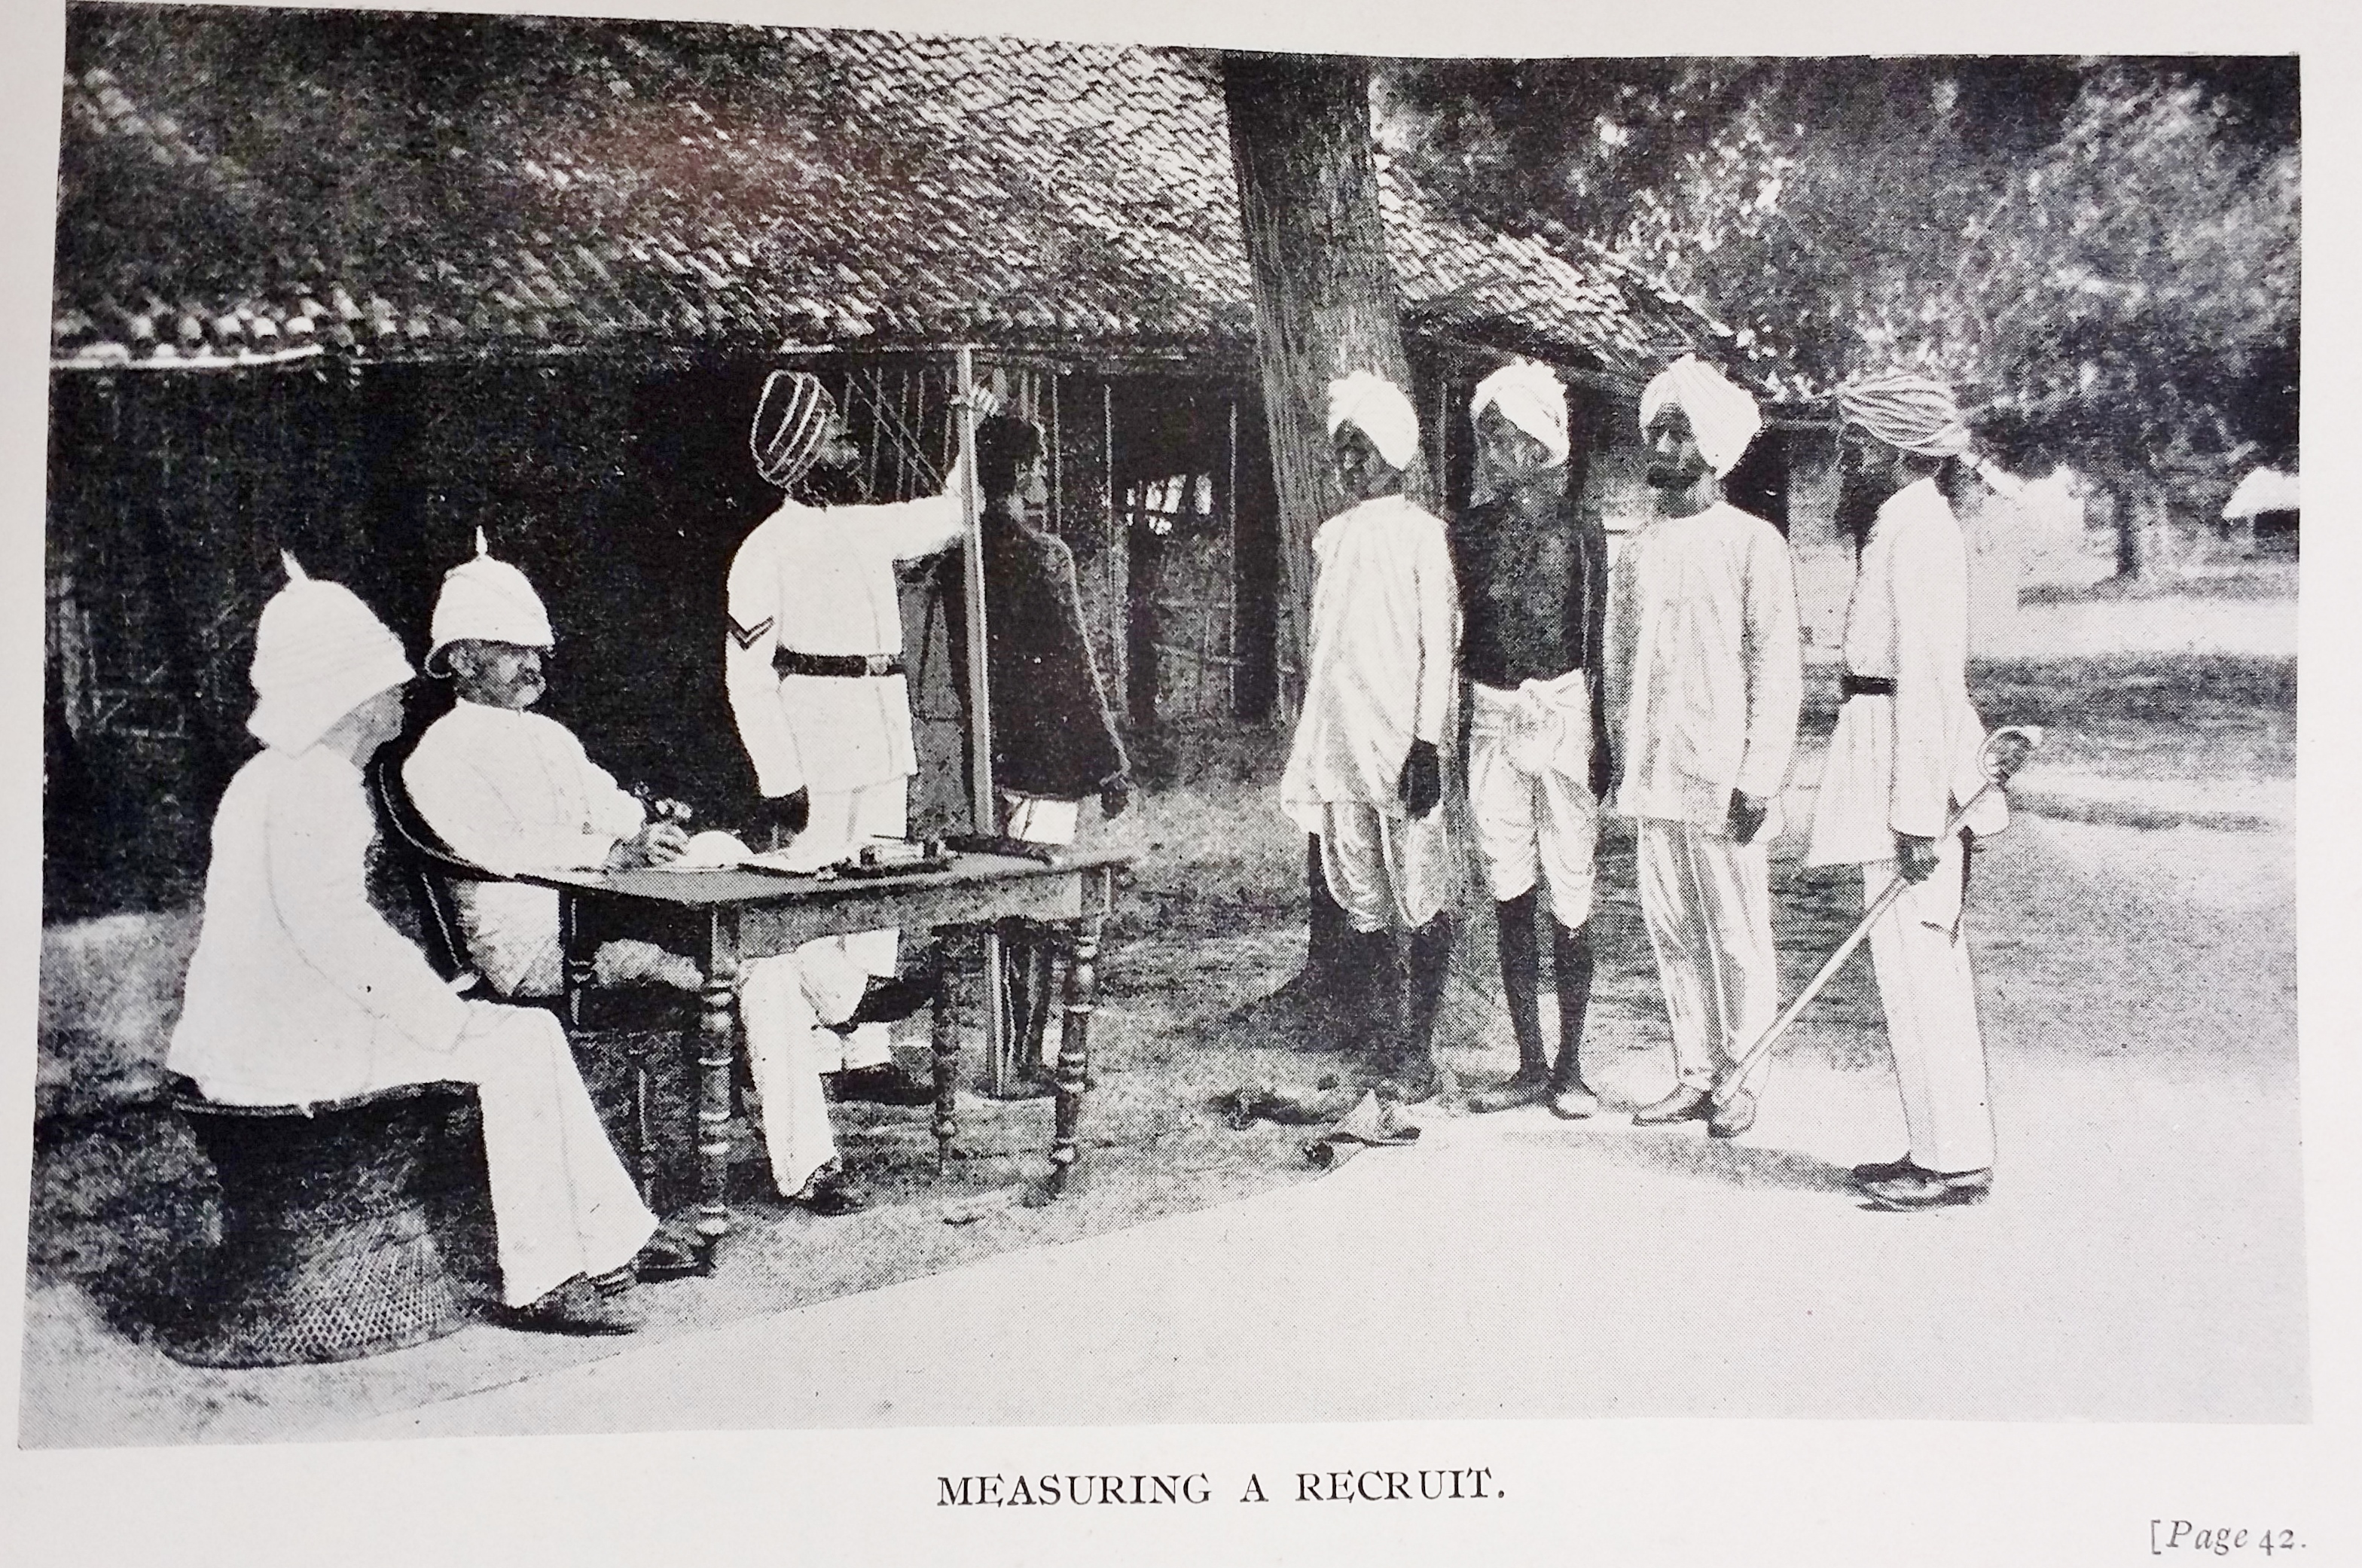 Life in the Indian Police, by C.E Gouldsbury (1912, British Library Asia, Pacific & Africa T 9029)